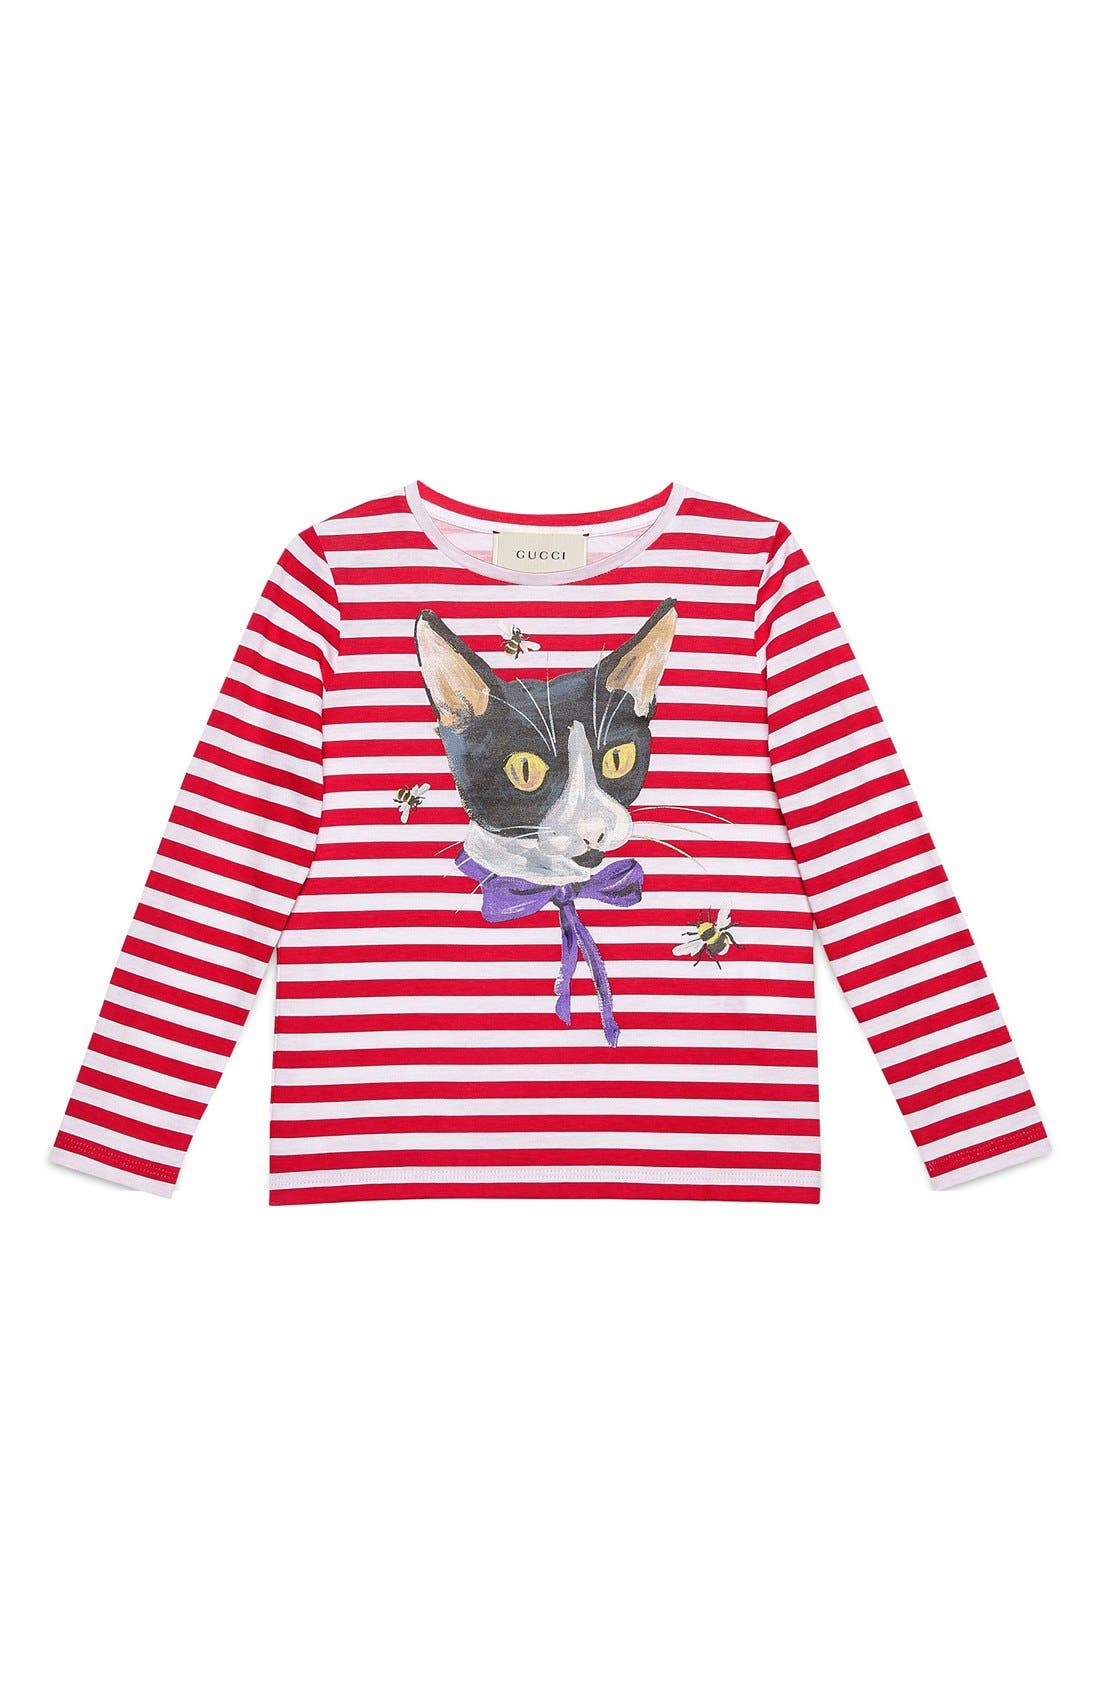 GUCCI 'Cat & Bees' Stripe Long Sleeve Tee